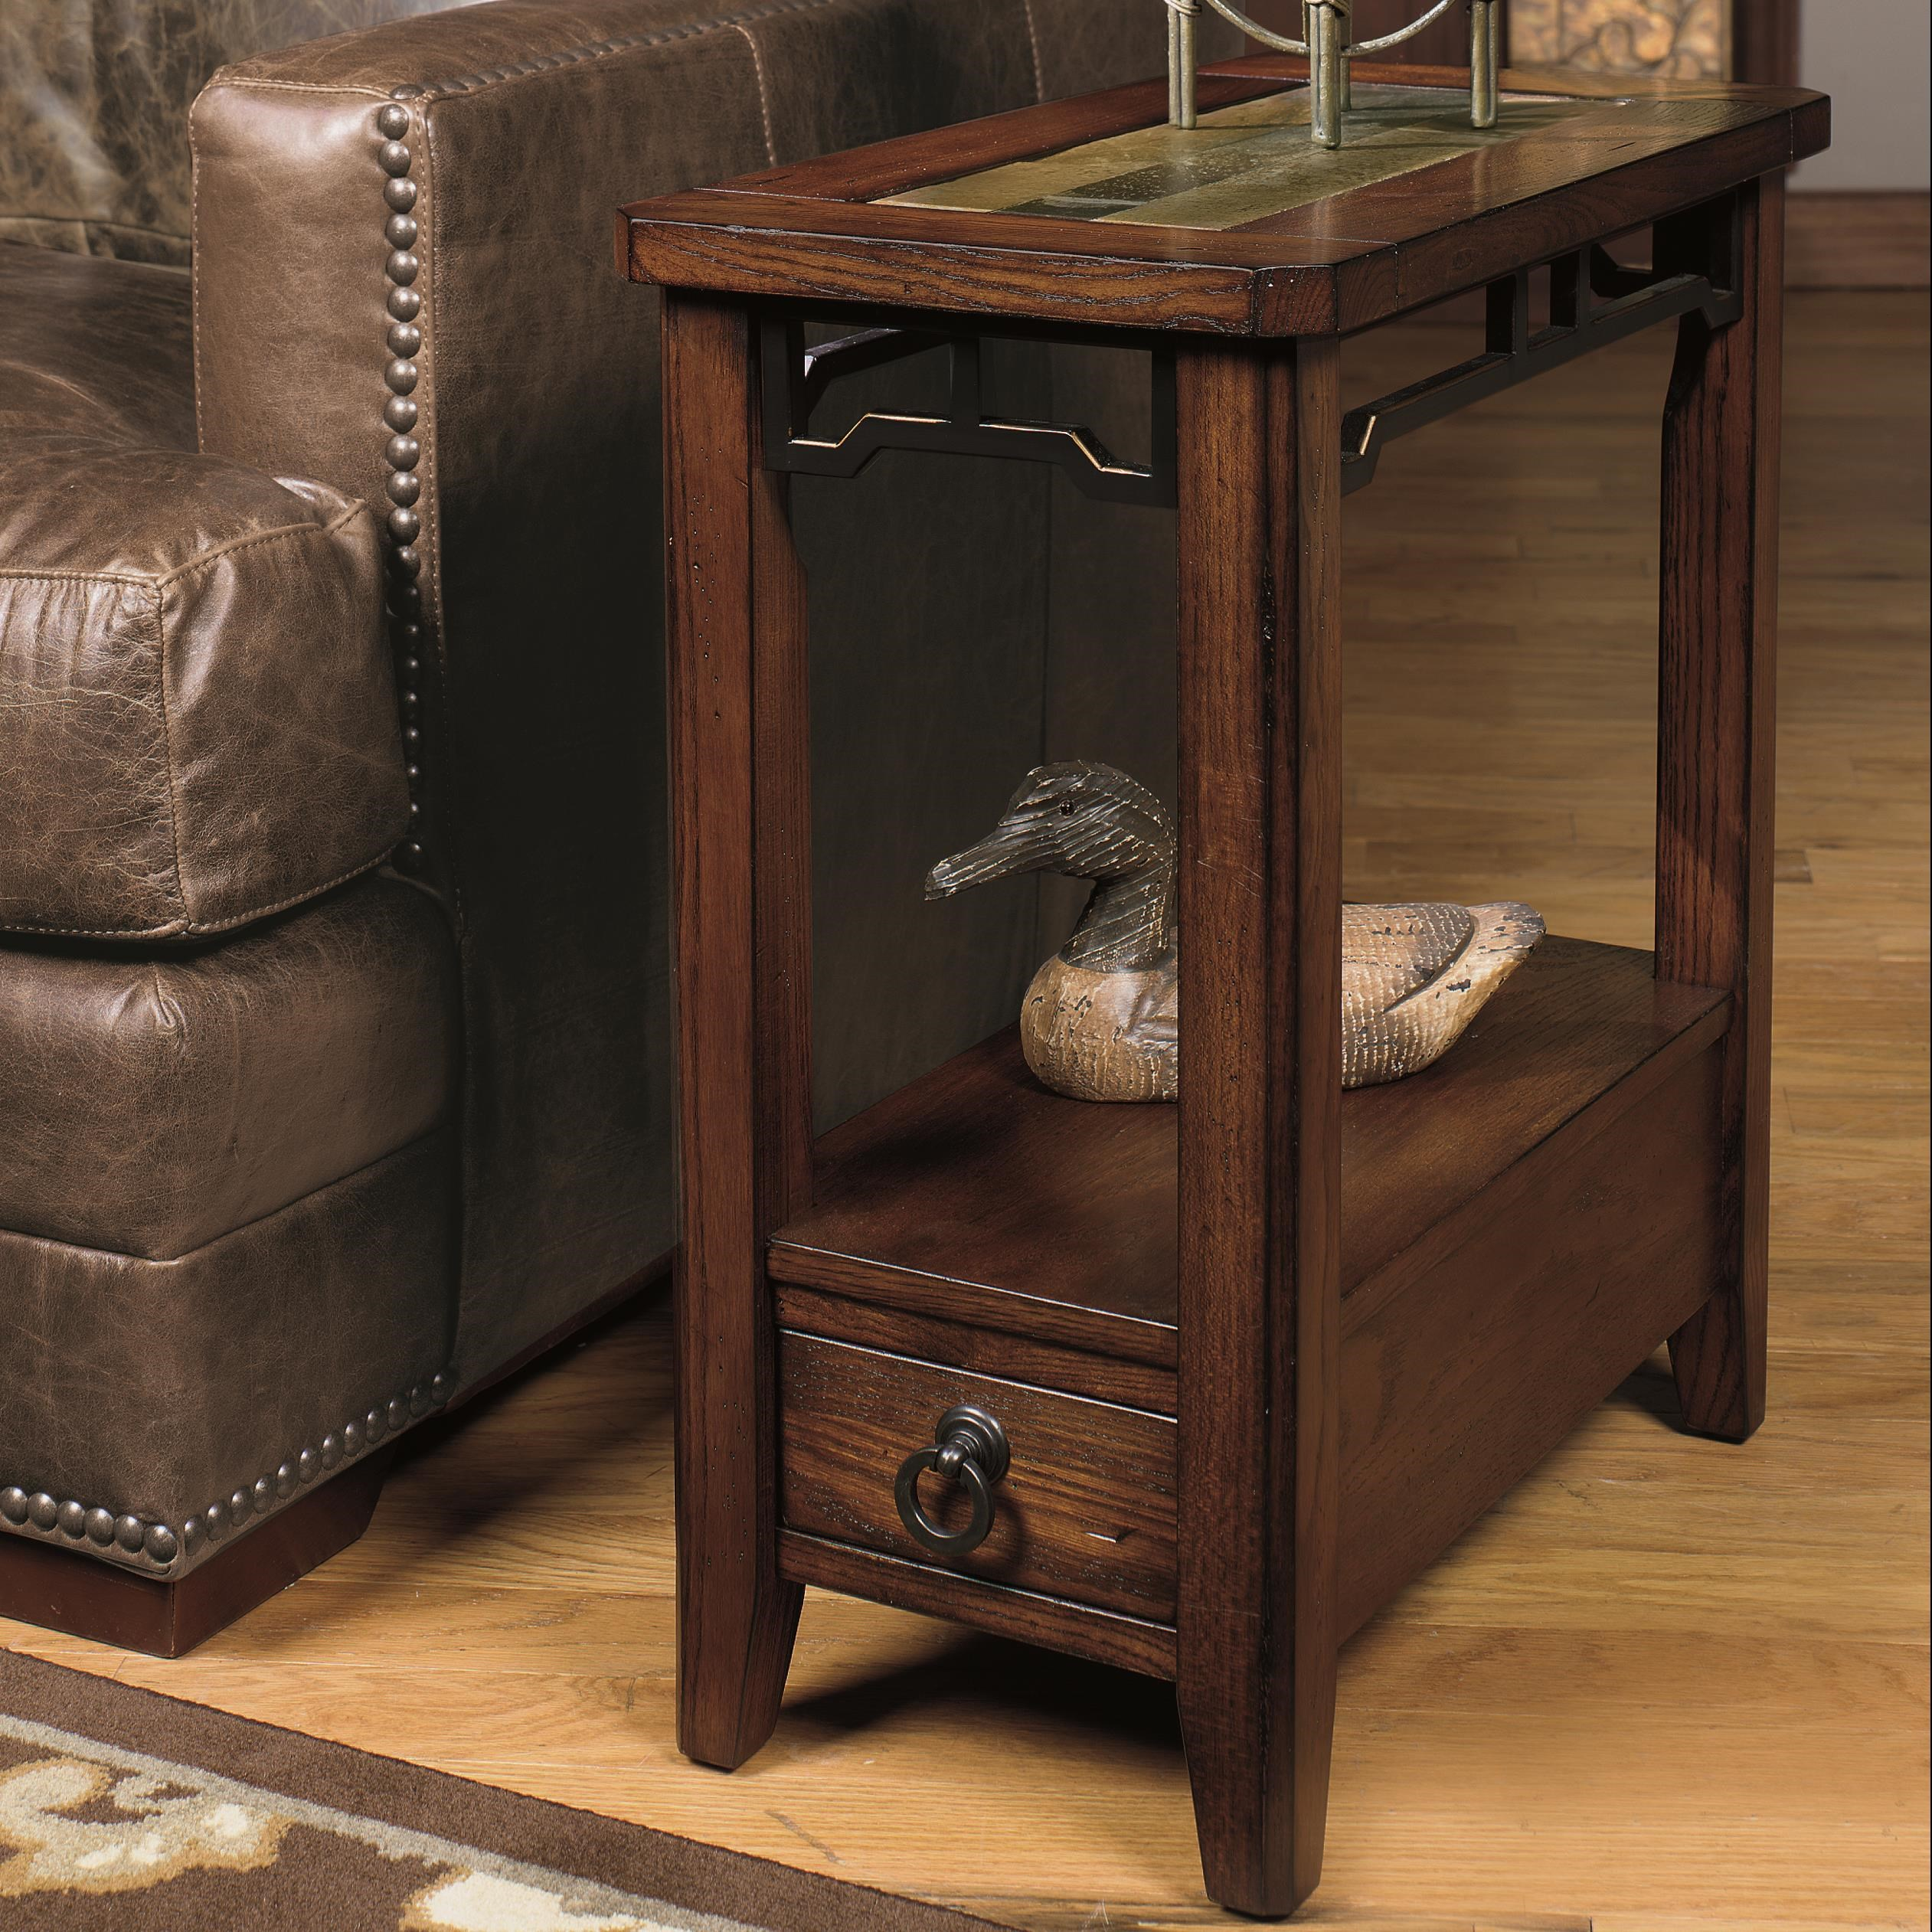 Amazing 5013 Chairside End Table With Inset Stone Top By Null Furniture